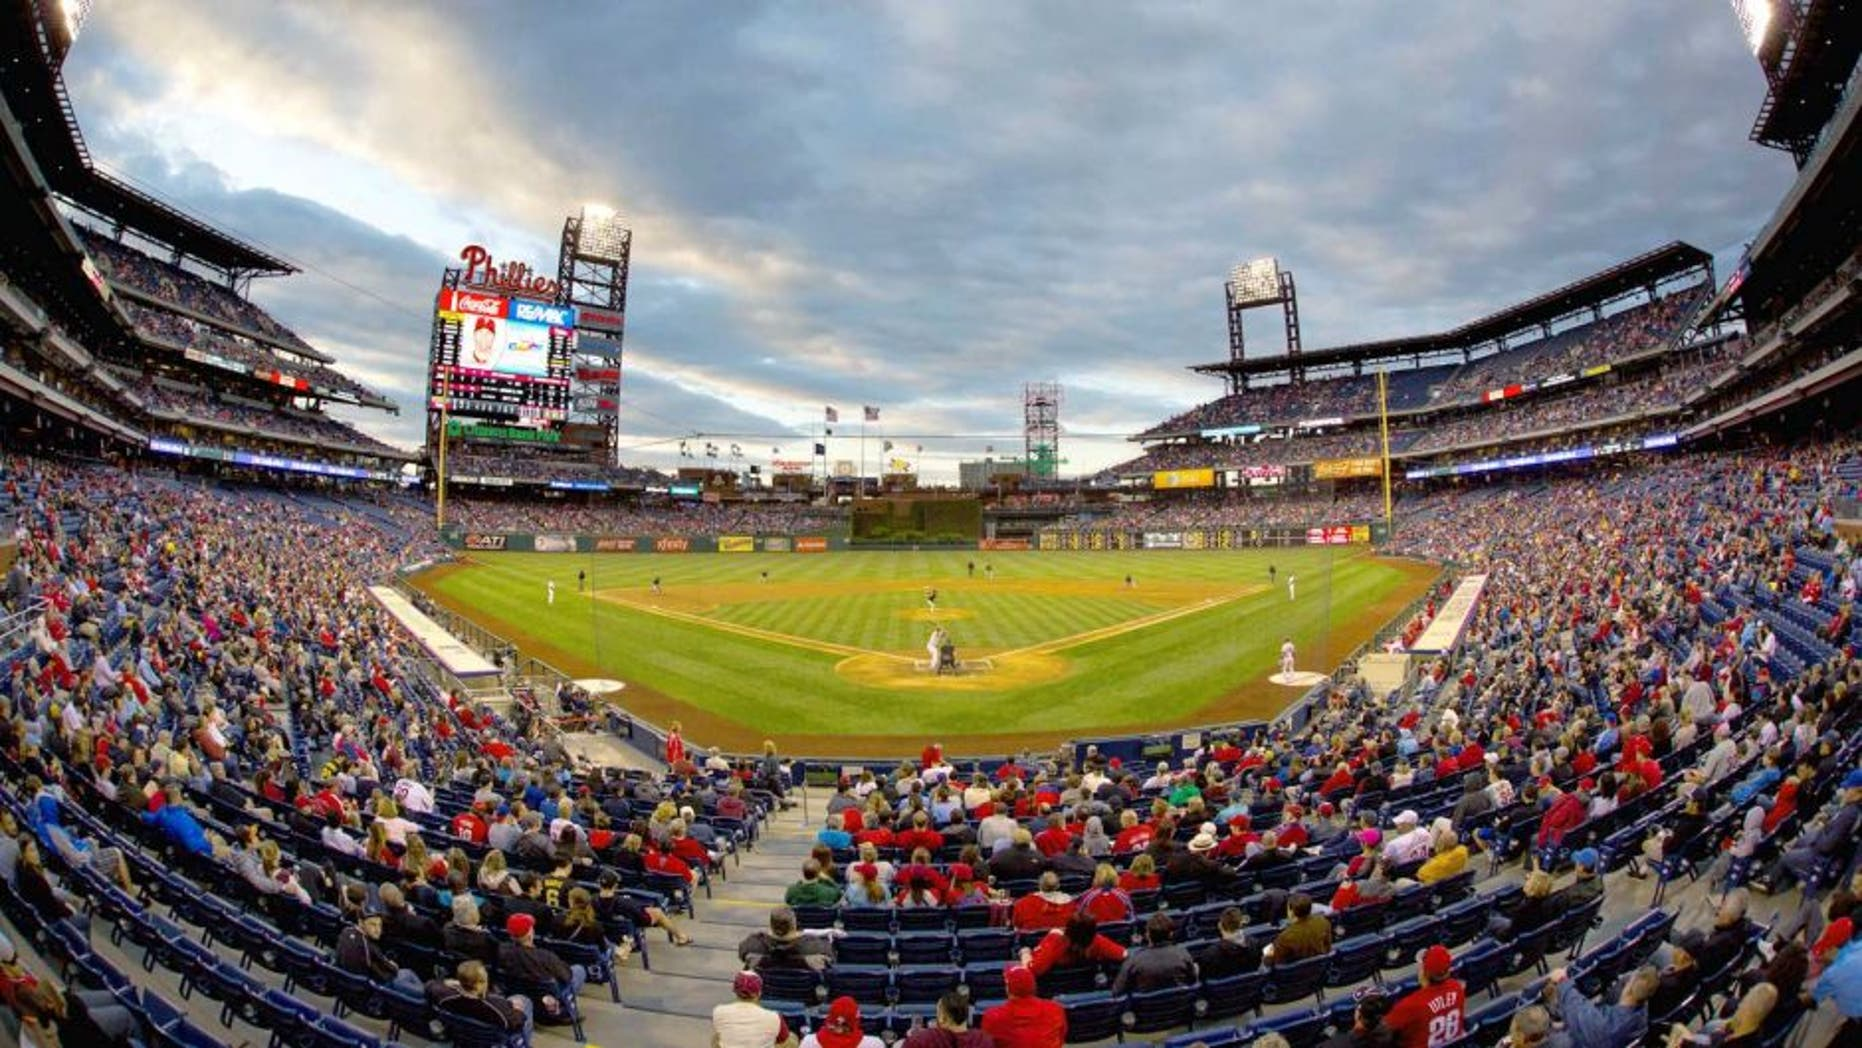 May 13, 2015; Philadelphia, PA, USA; General view Citizens Bank Park during game play between the Philadelphia Phillies and the Pittsburgh Pirates. The Phillies won 3-2. Mandatory Credit: Bill Streicher-USA TODAY Sports